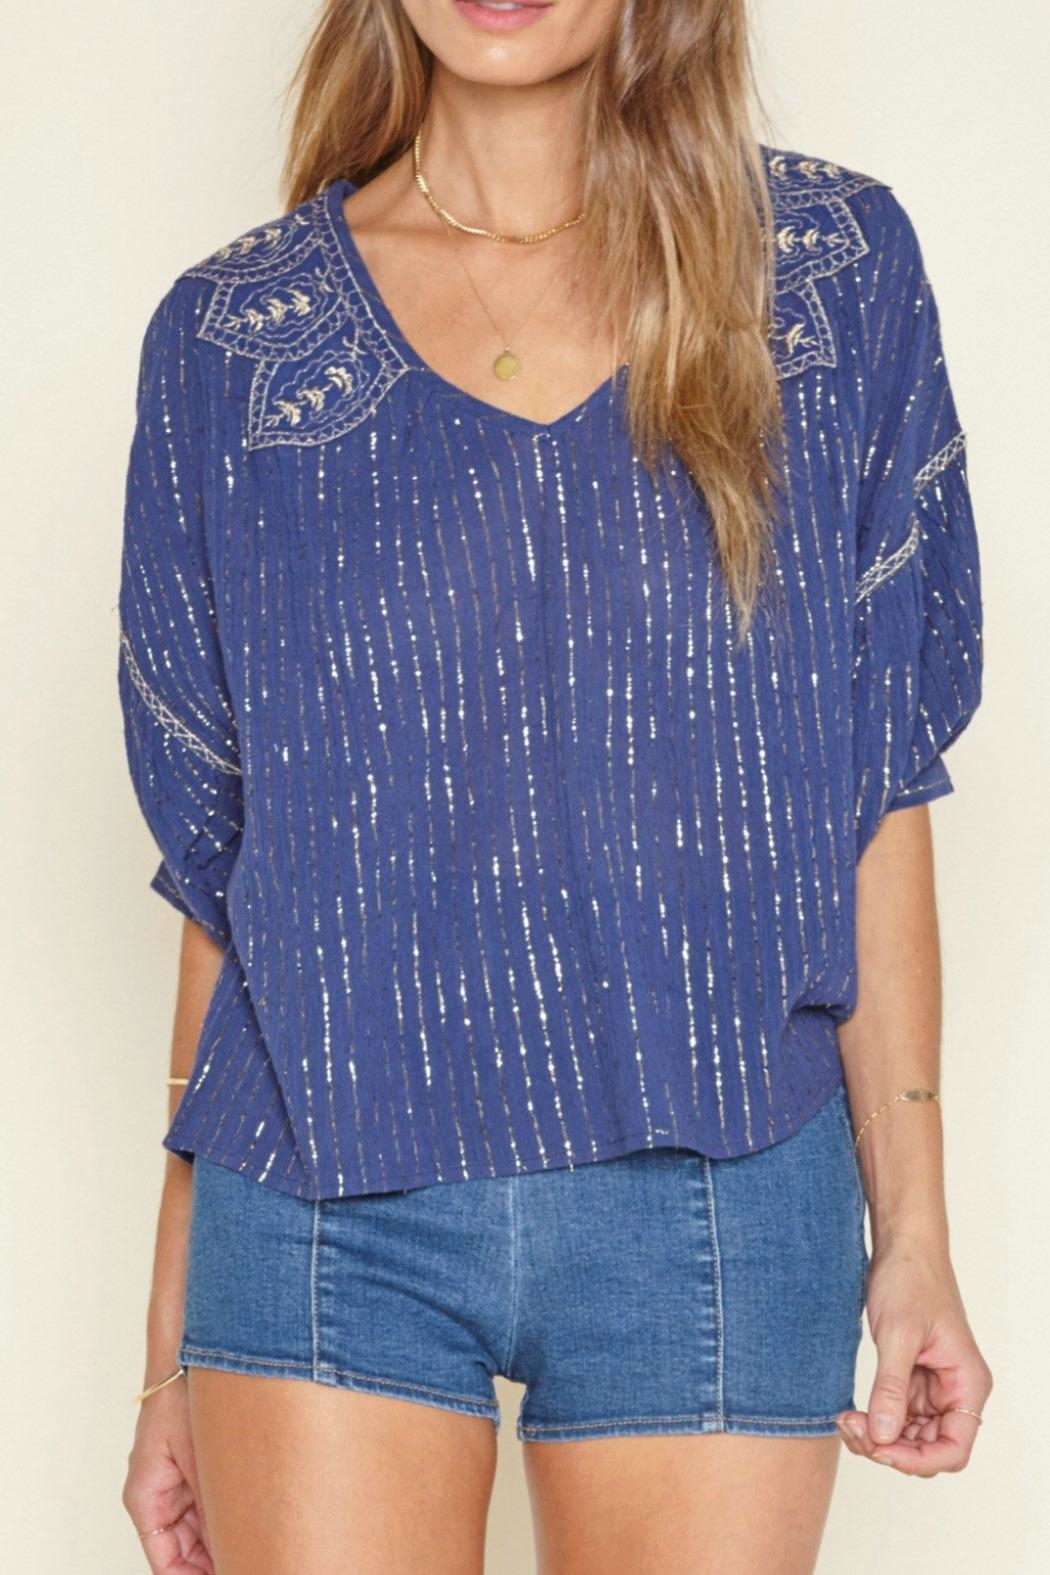 AMUSE SOCIETY Embellished Woven Top - Main Image